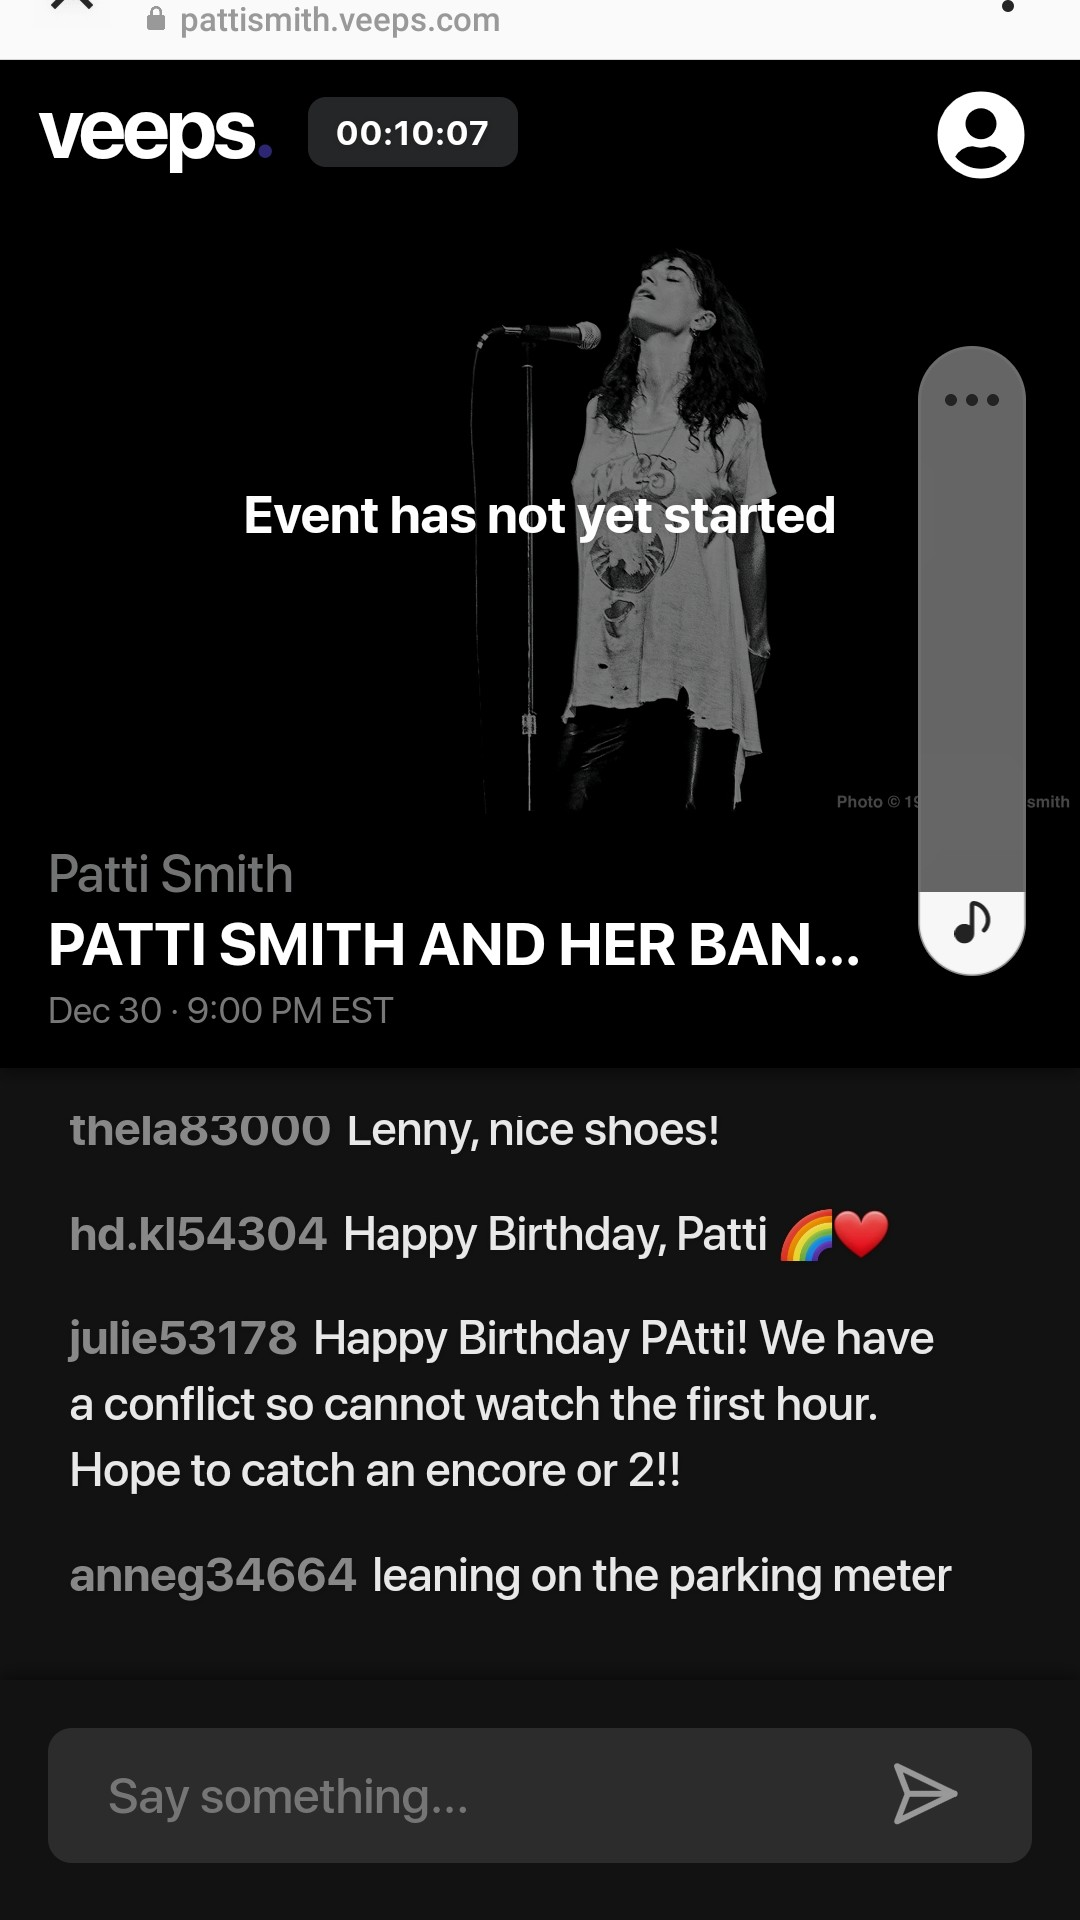 Patti Smith about to go live